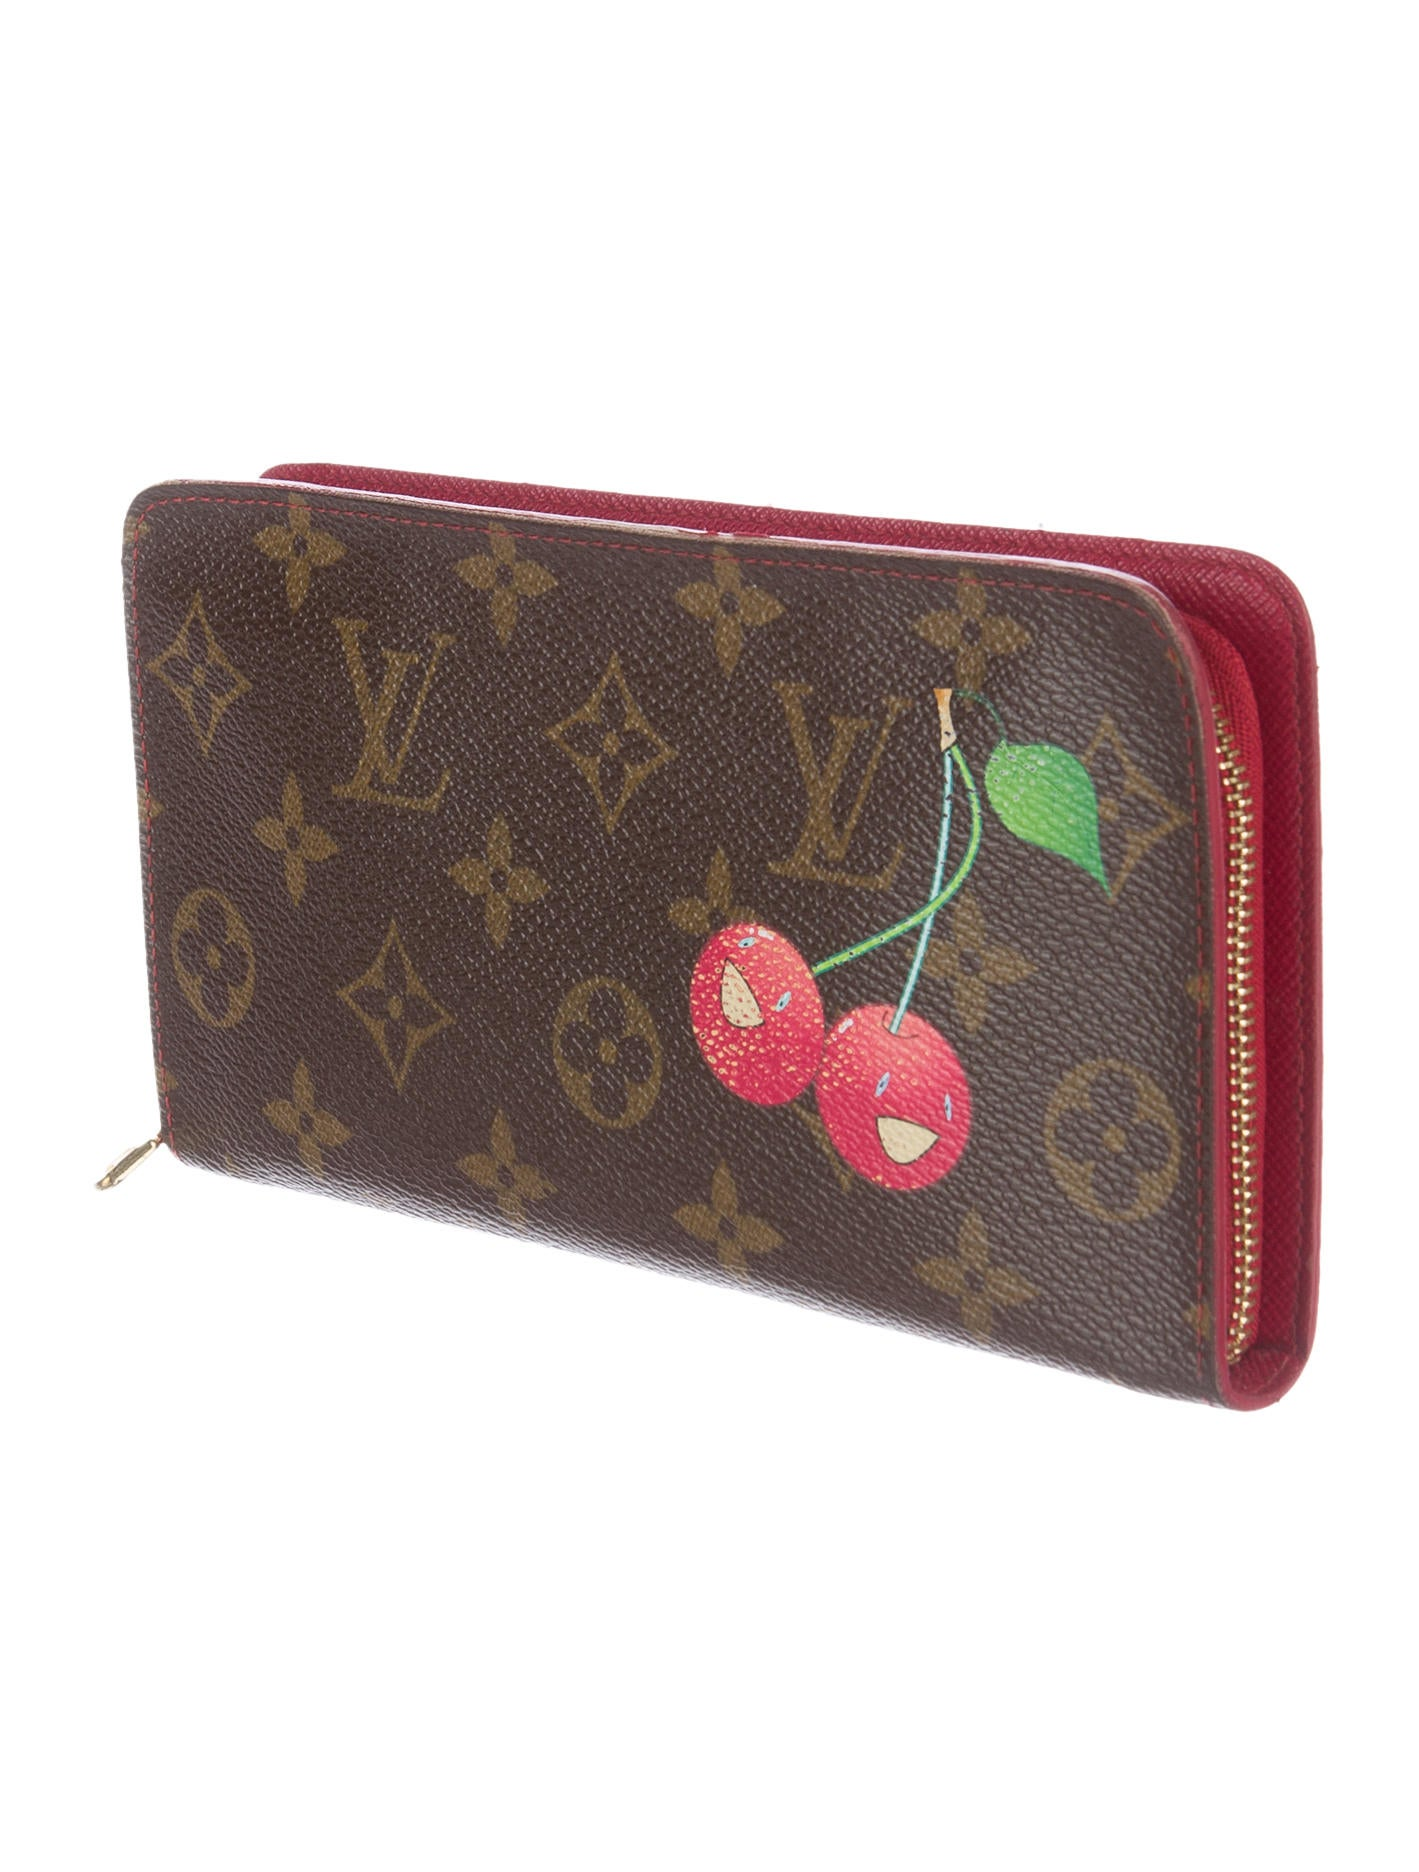 louis vuitton monogram cerises porte monnaie zippy wallet